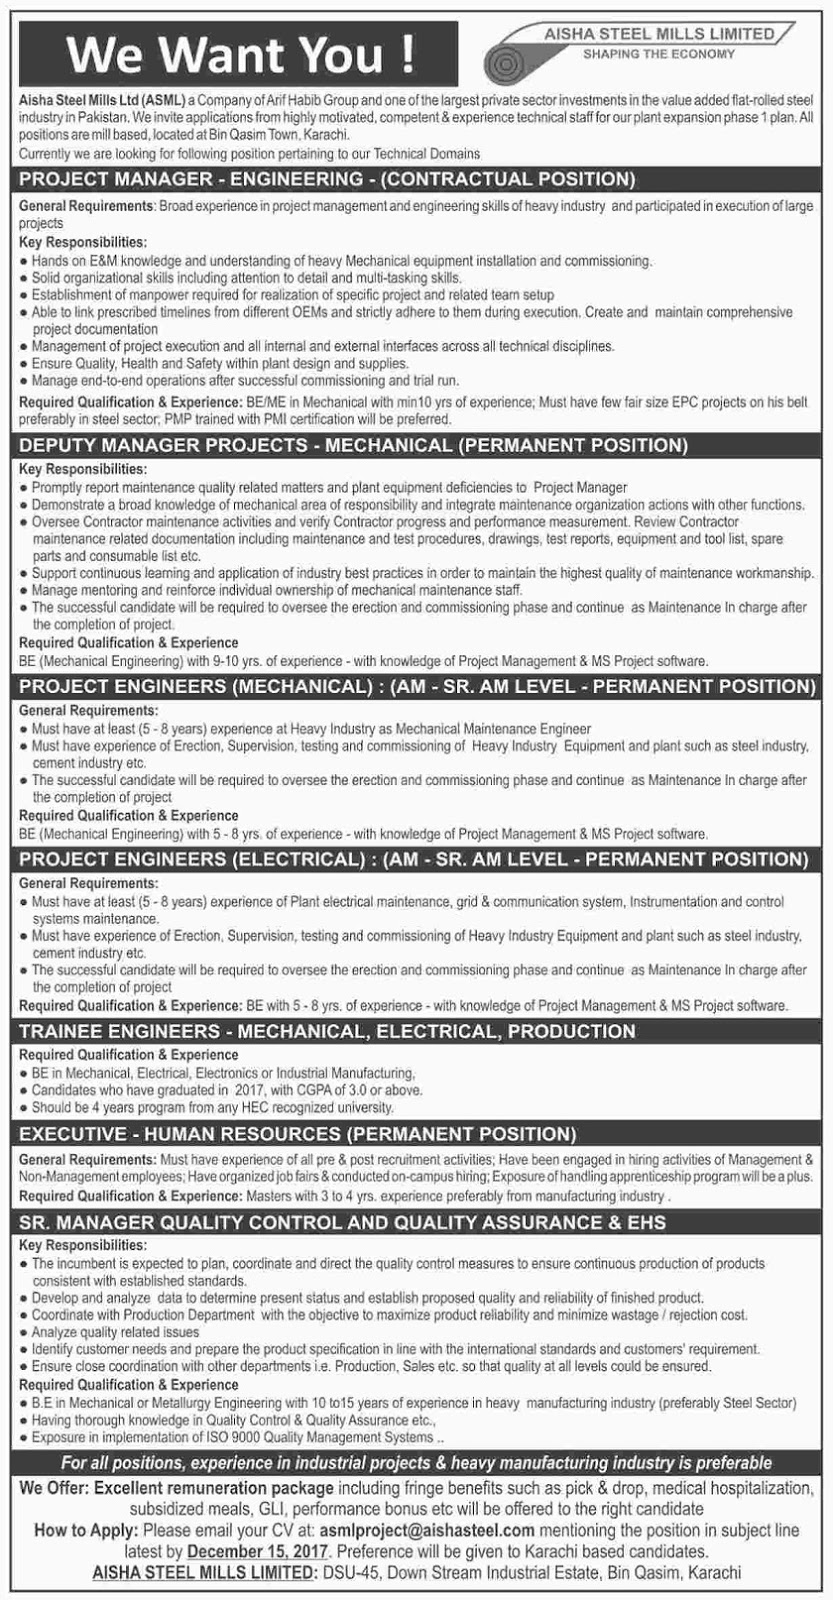 Jobs in Karachi, Karachi, Jobs, Jobs in Pakistan, Pakistan Jobs, Trainee Engineer Jobs, Electrical Engineer, Mechanical Engineers, Jobs in Sindh, Steel Mills Jobs, HR Jobs